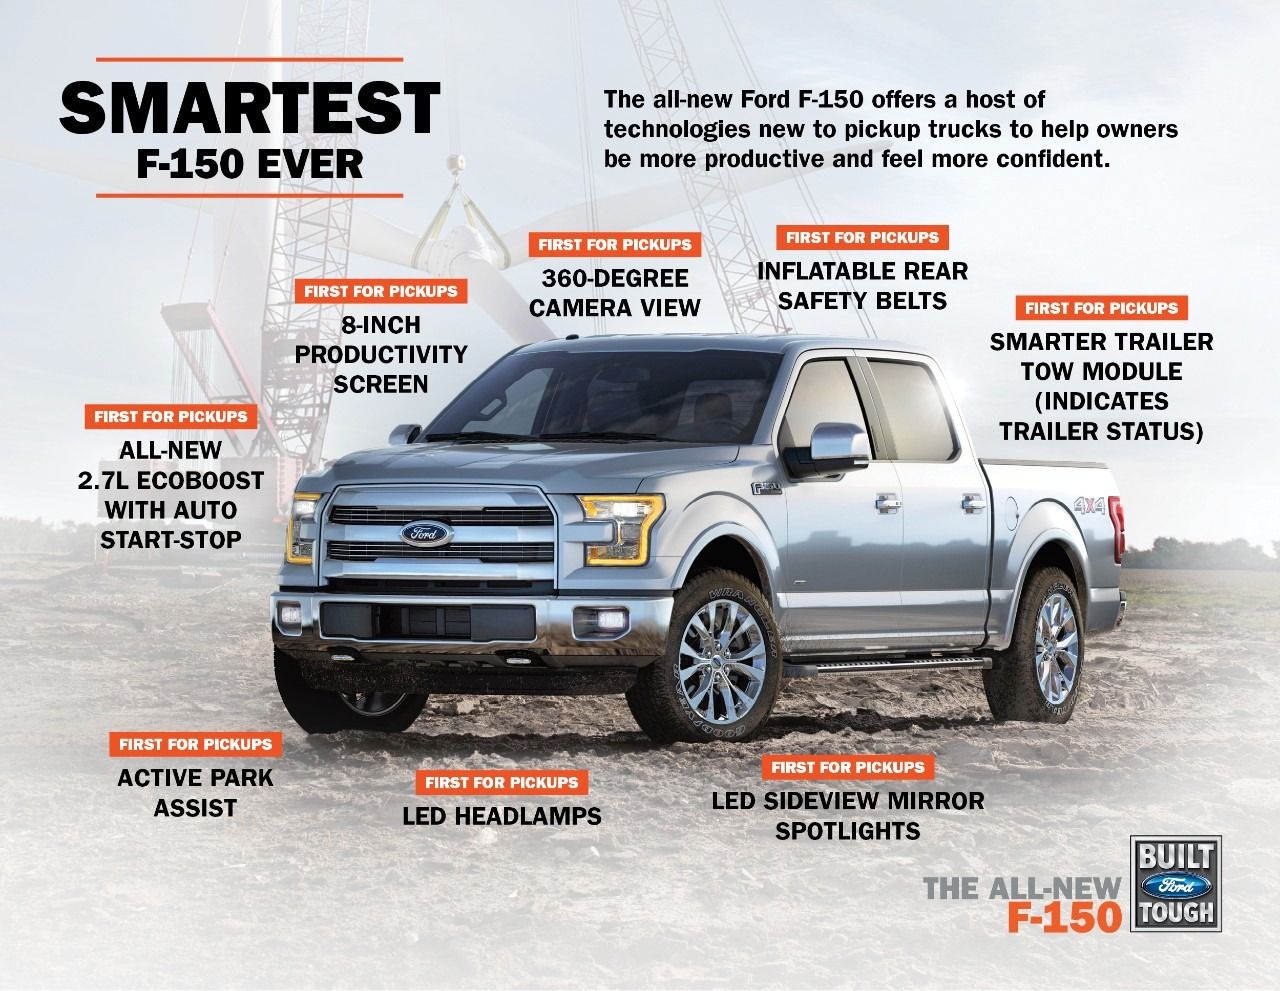 2015 Ford F-150 Breaks Cover - Photo Gallery